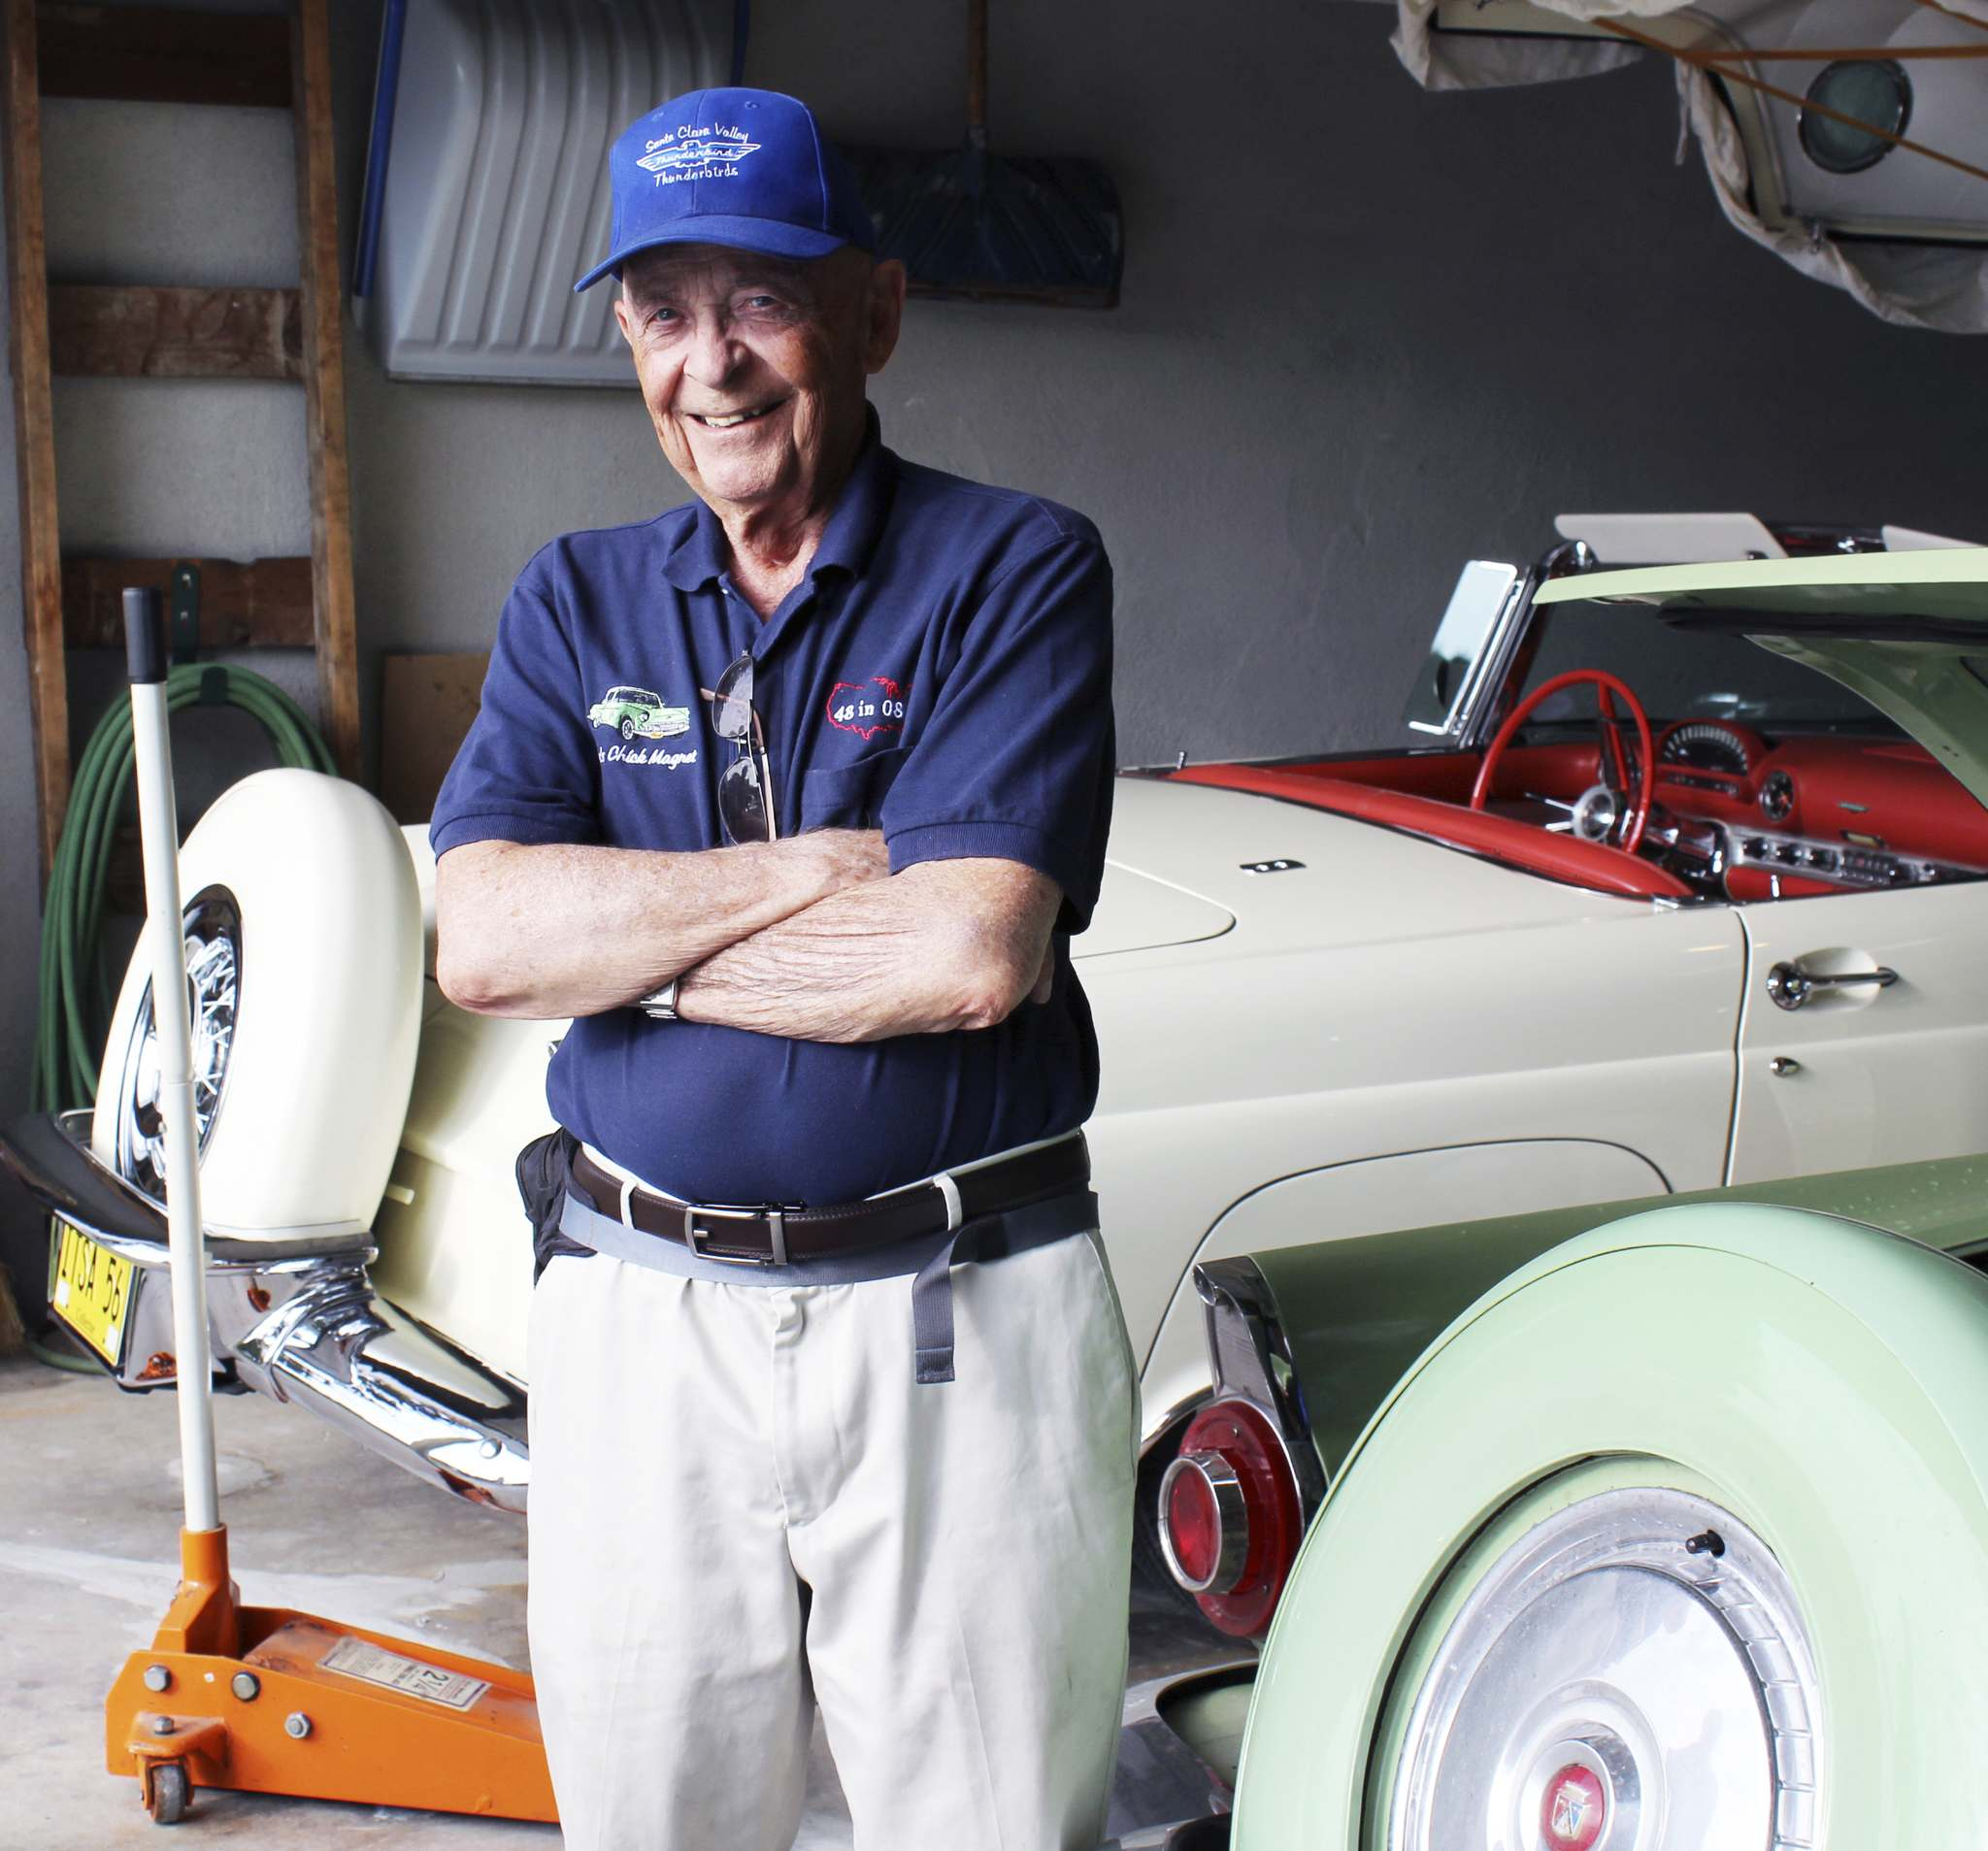 Ortwine 'Doc' Dockter, from California, had his T-Bird repaired here in Winnipeg. (Larry D'Argis / Winnipeg Free Press)